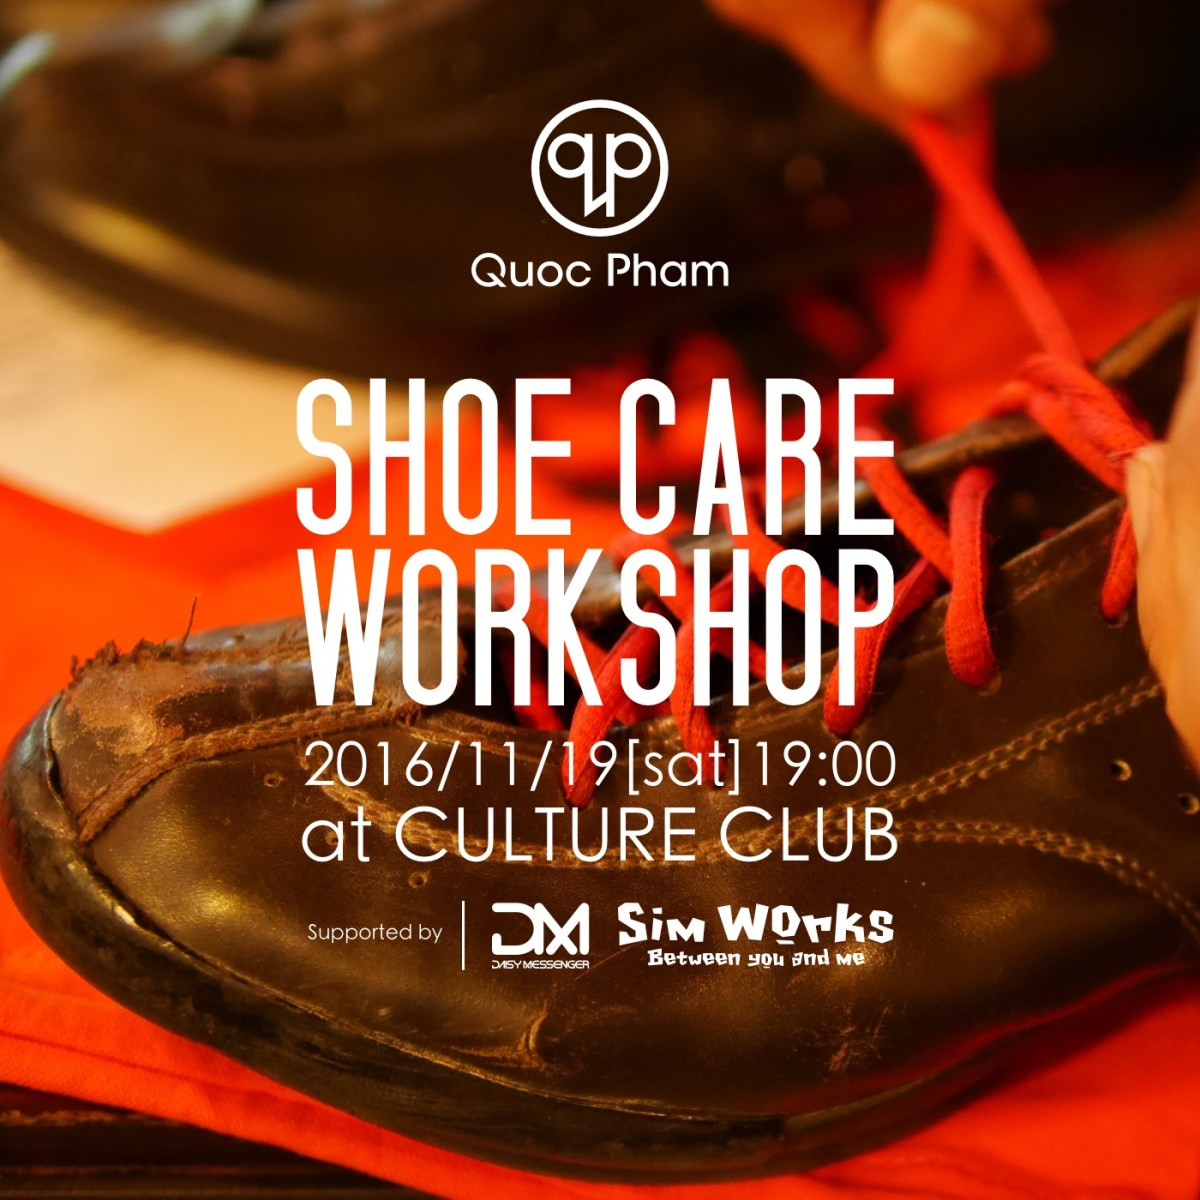 QuocPham SHOE CARE WORKSHOP